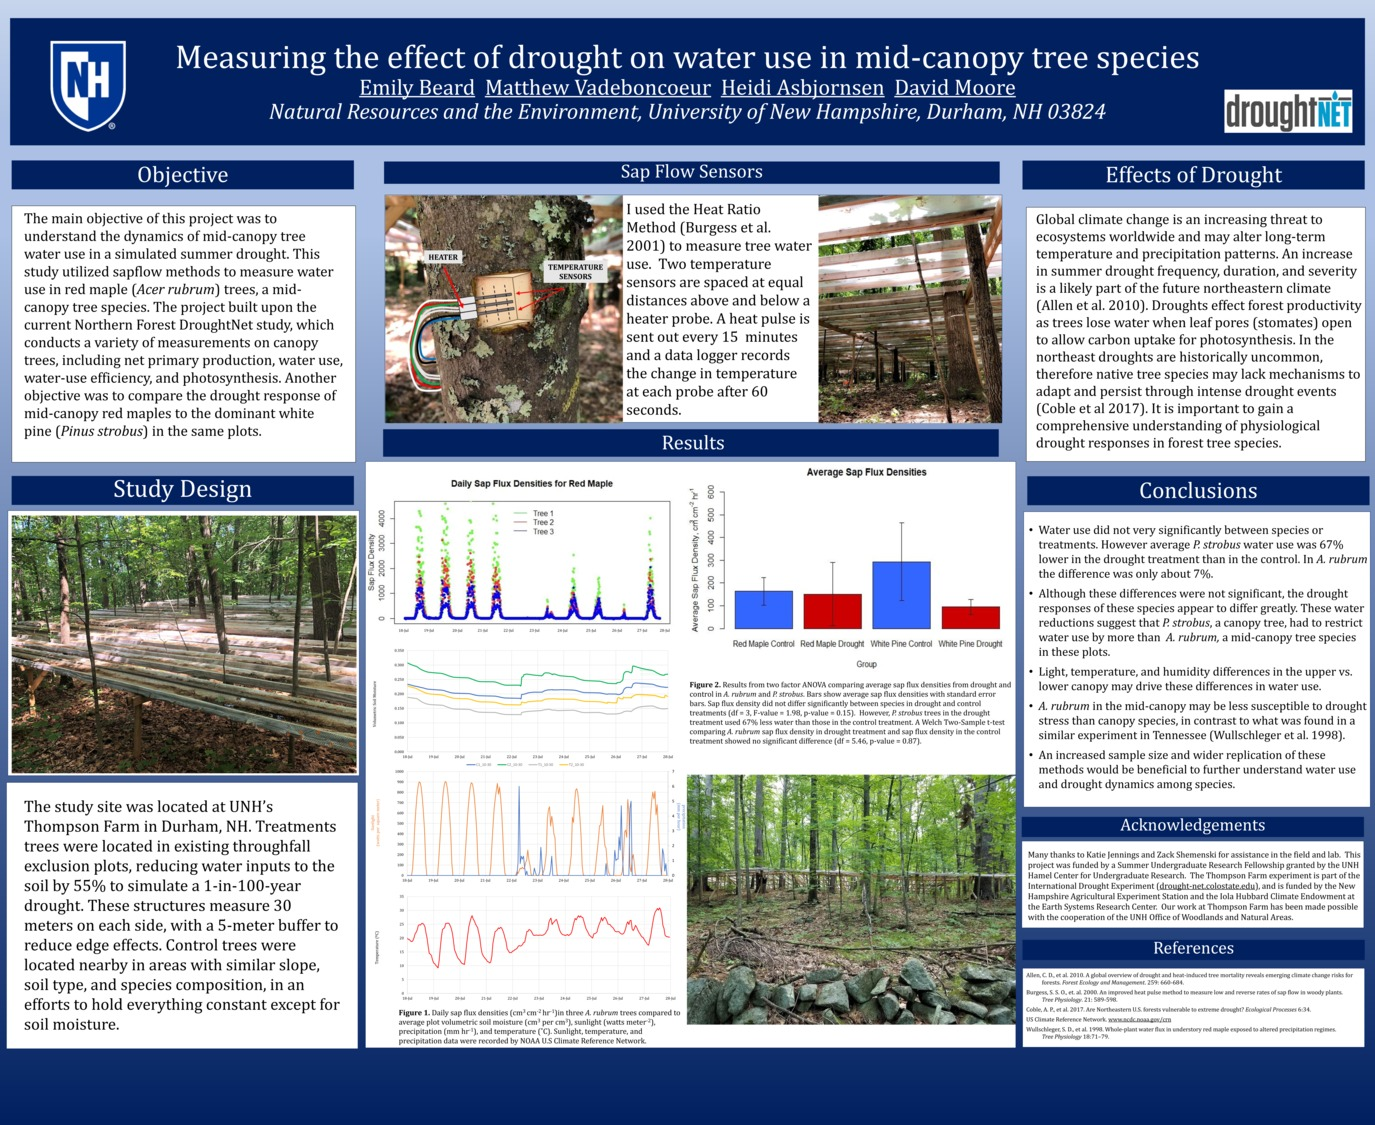 Measuring The Effect Of Drought On Water Use In Mid-Canopy Tree Species by eab1030